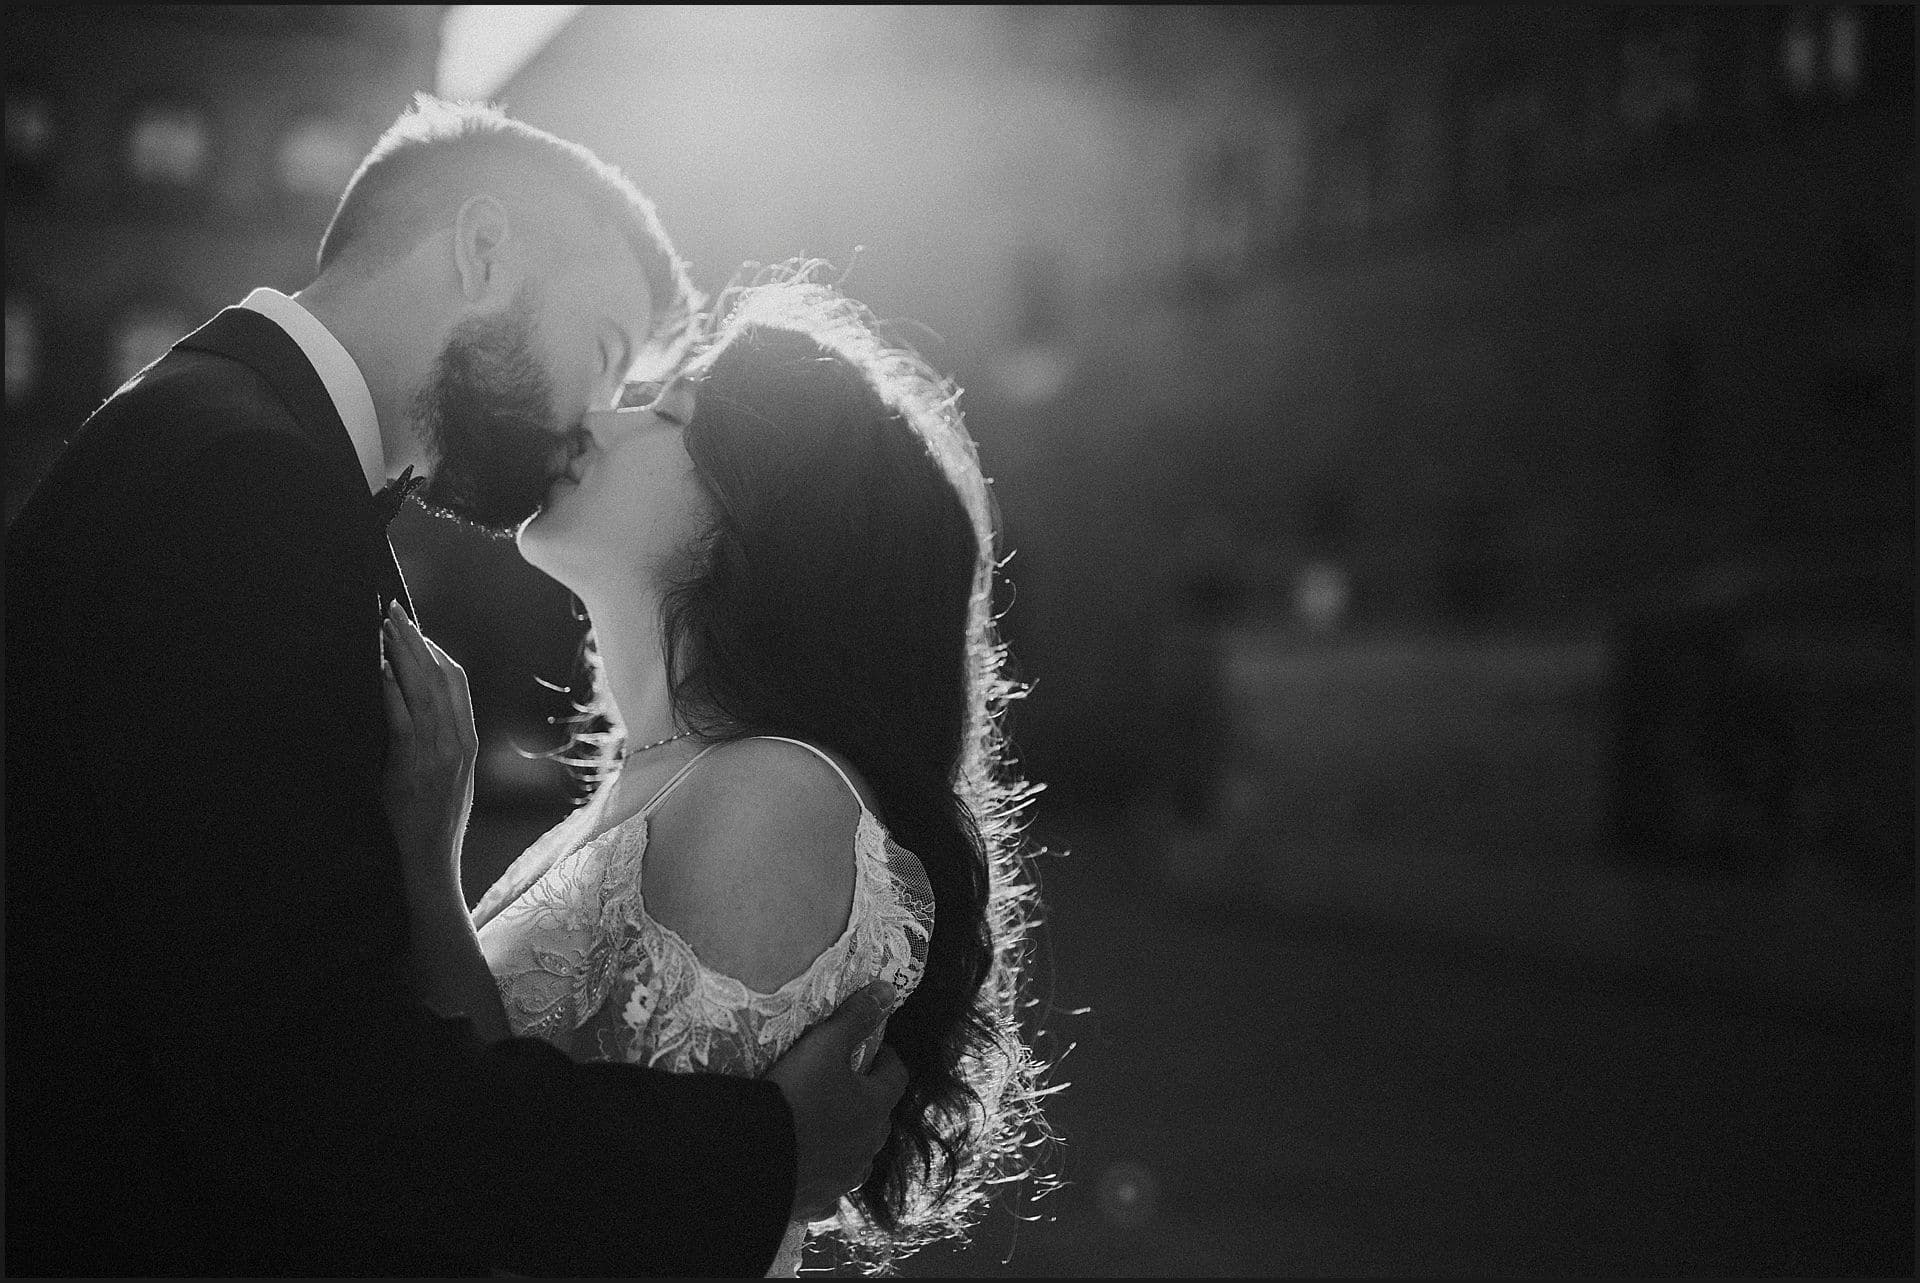 bride, groom, kiss, intimate portrait, black and white